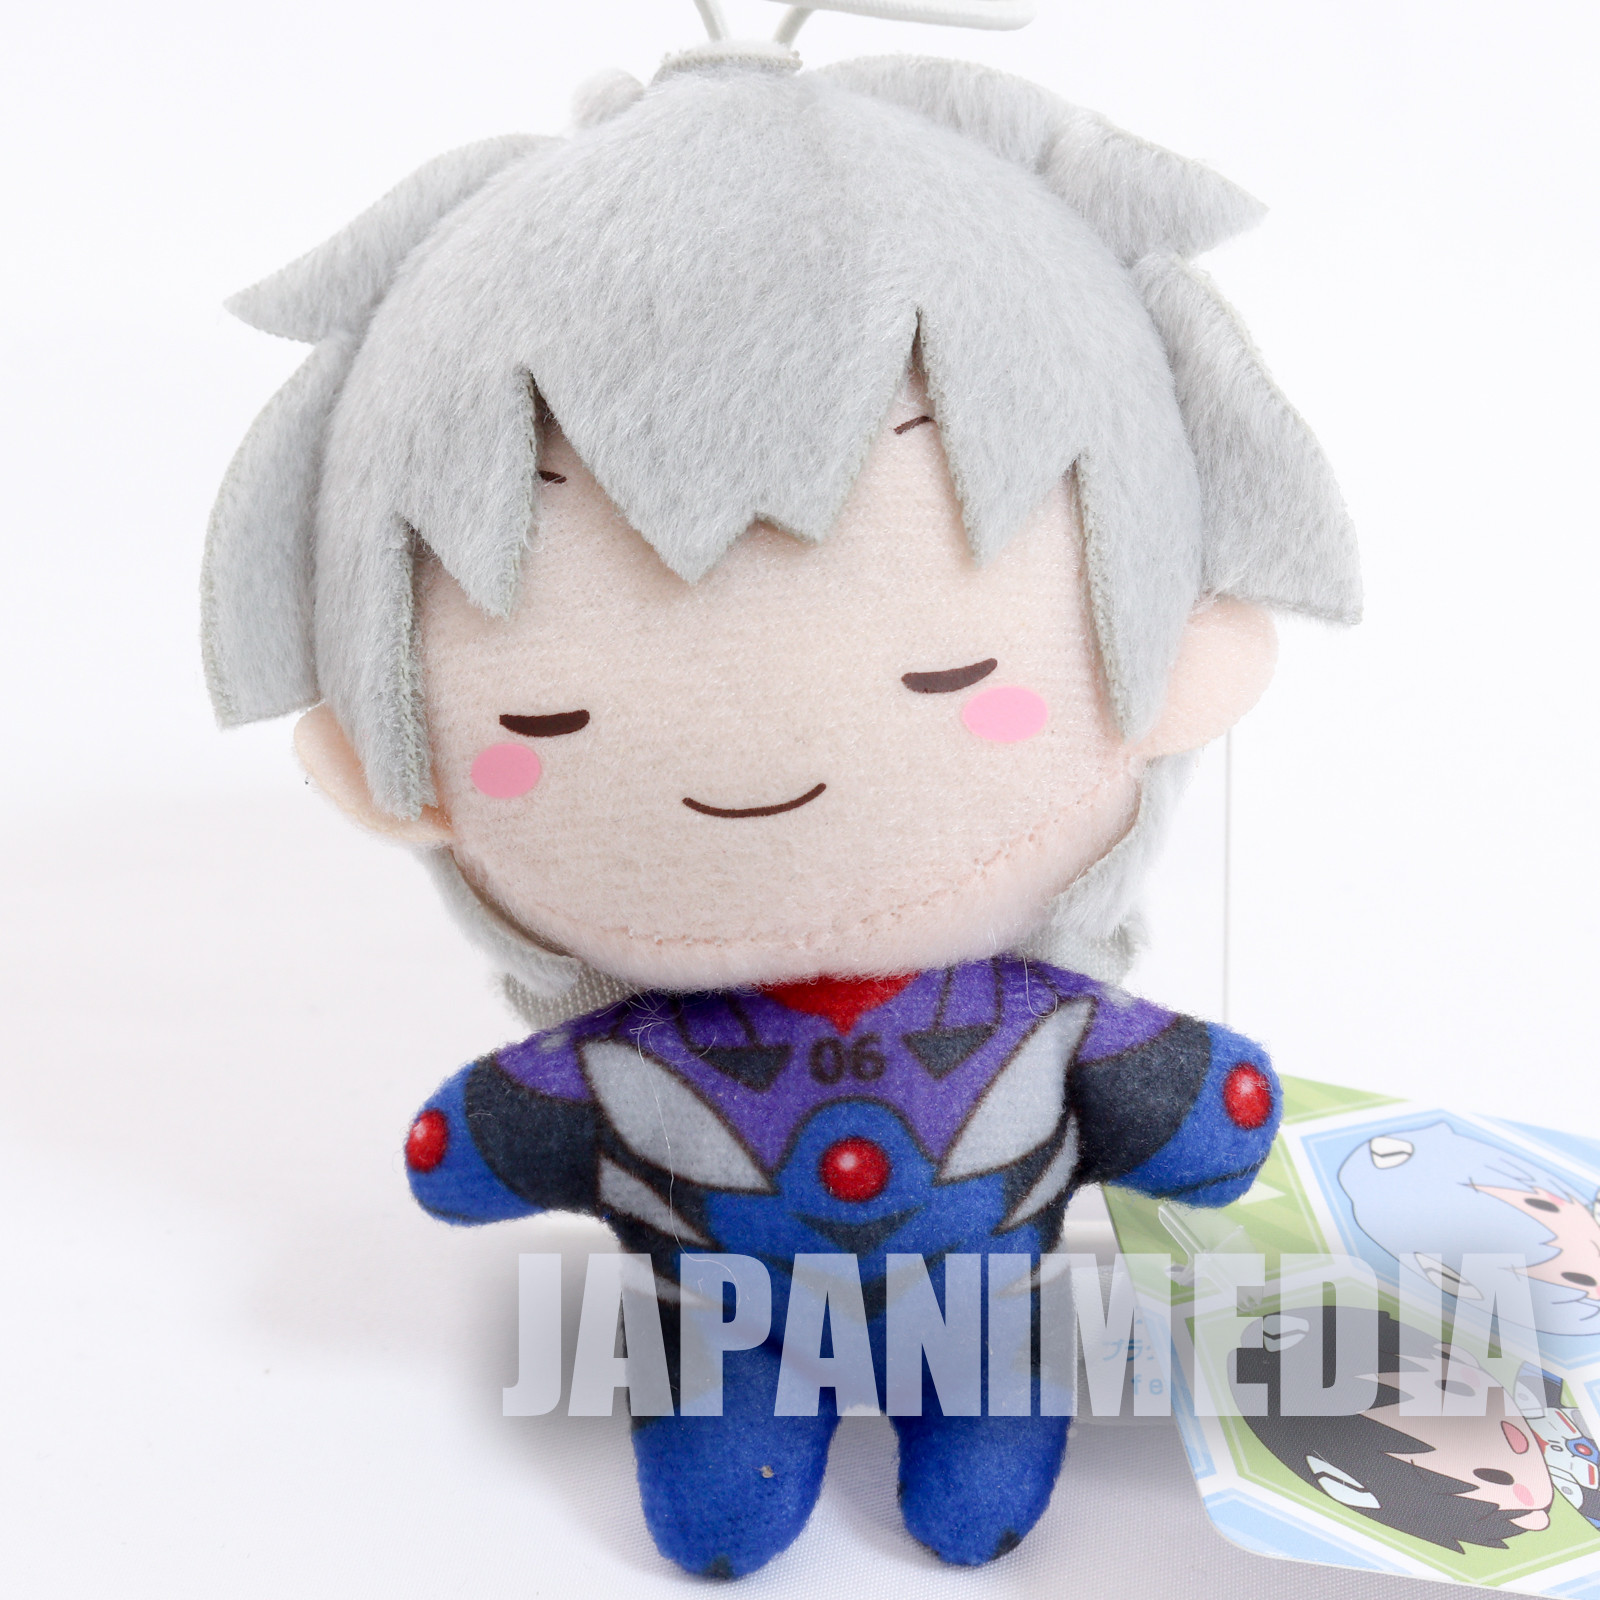 Evangelion Kaworu Nagisa Plugsuit Mini Plush Doll SEGA JAPAN ANIME MANGA